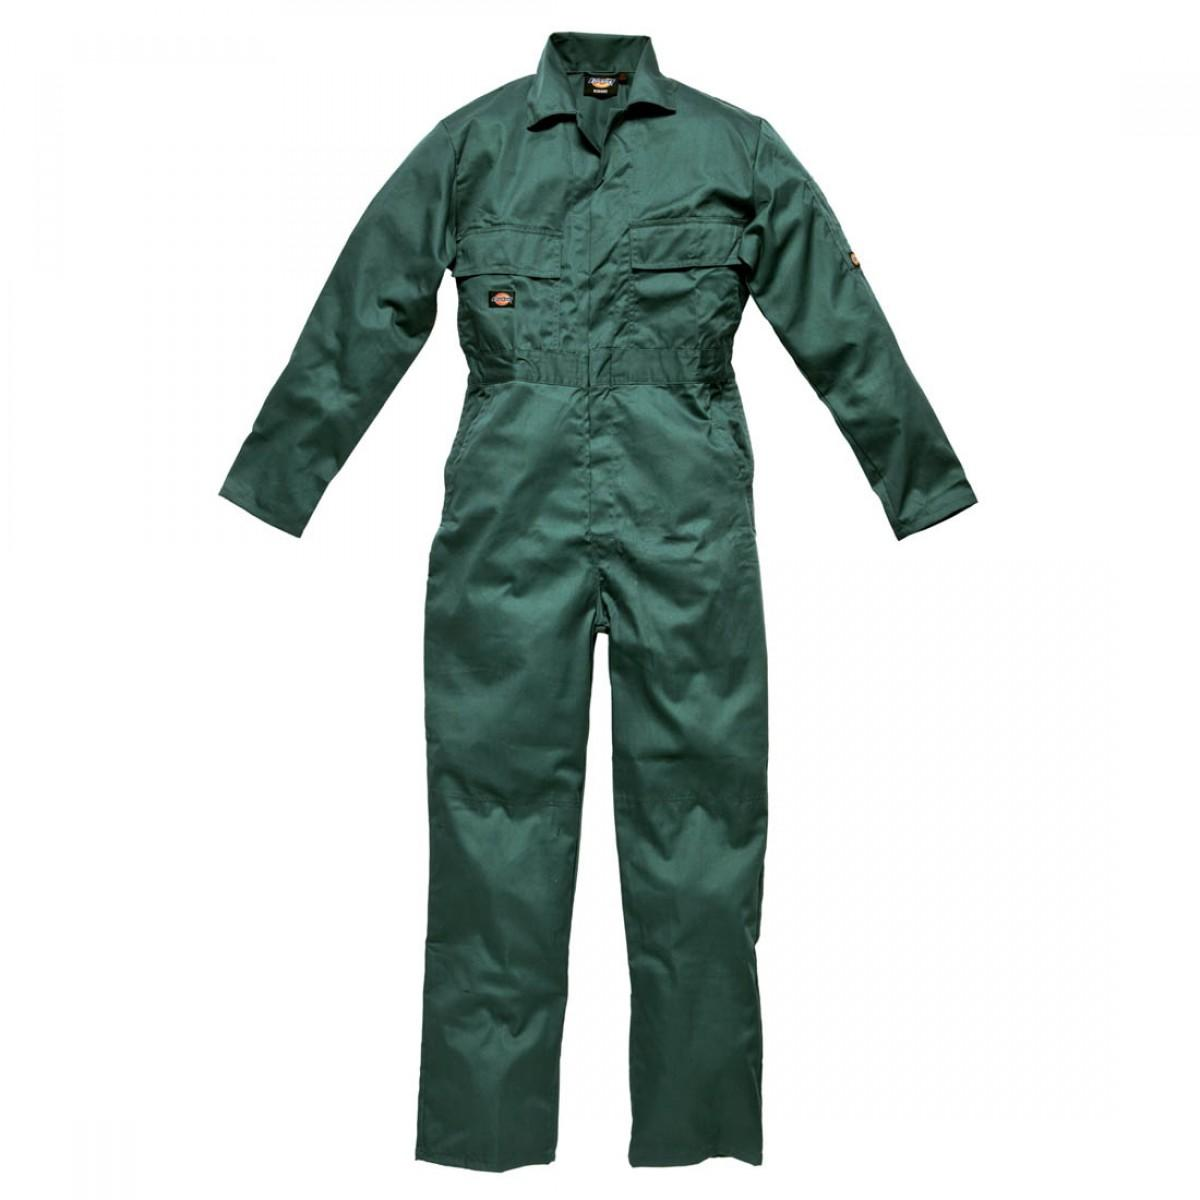 DICKIES 50 CHEST WD4829 LNC/GR STUD COVERALL REG